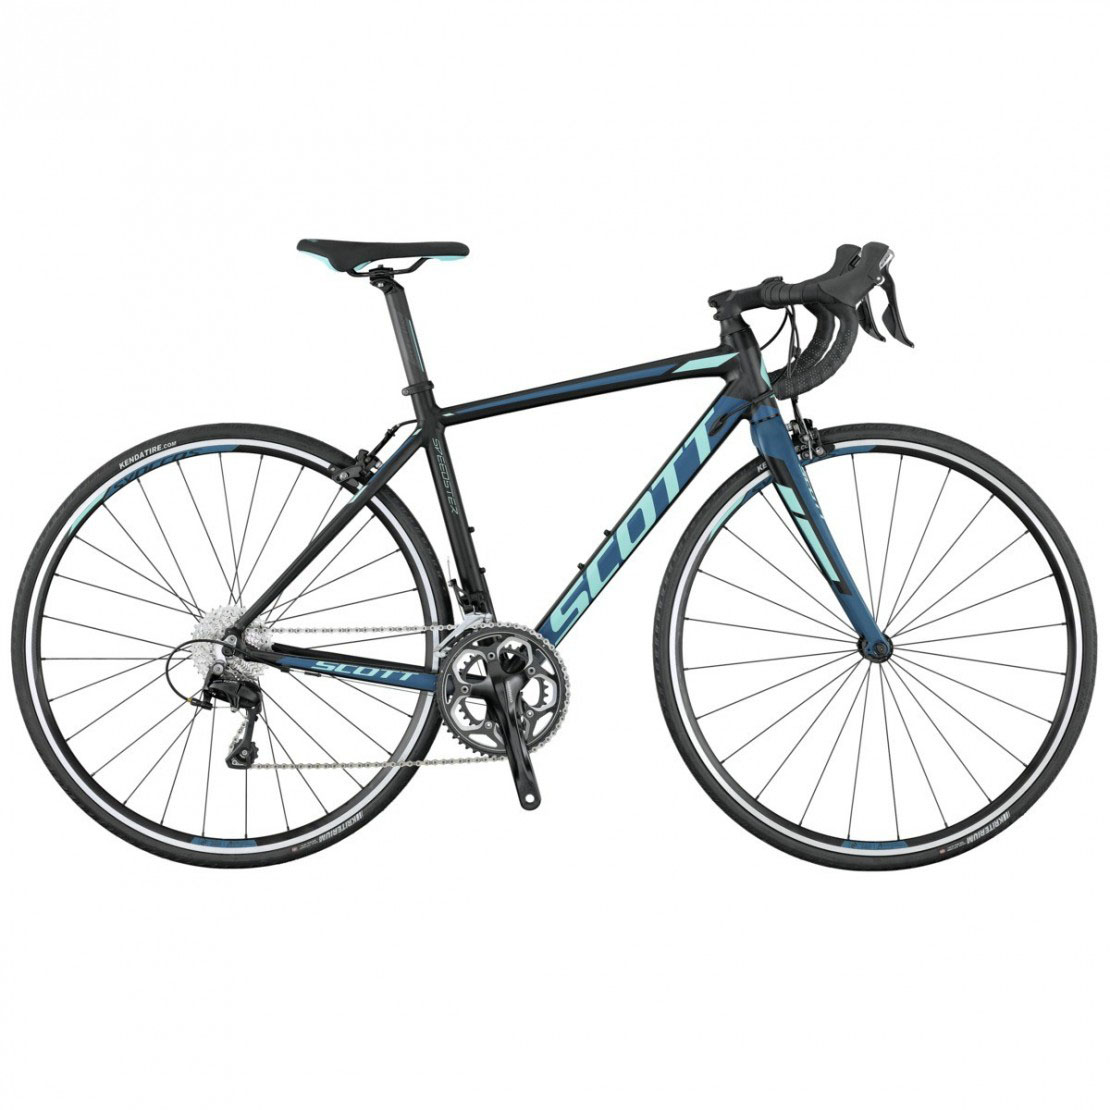 Contessa Speedster 15 2017 - Road Bike